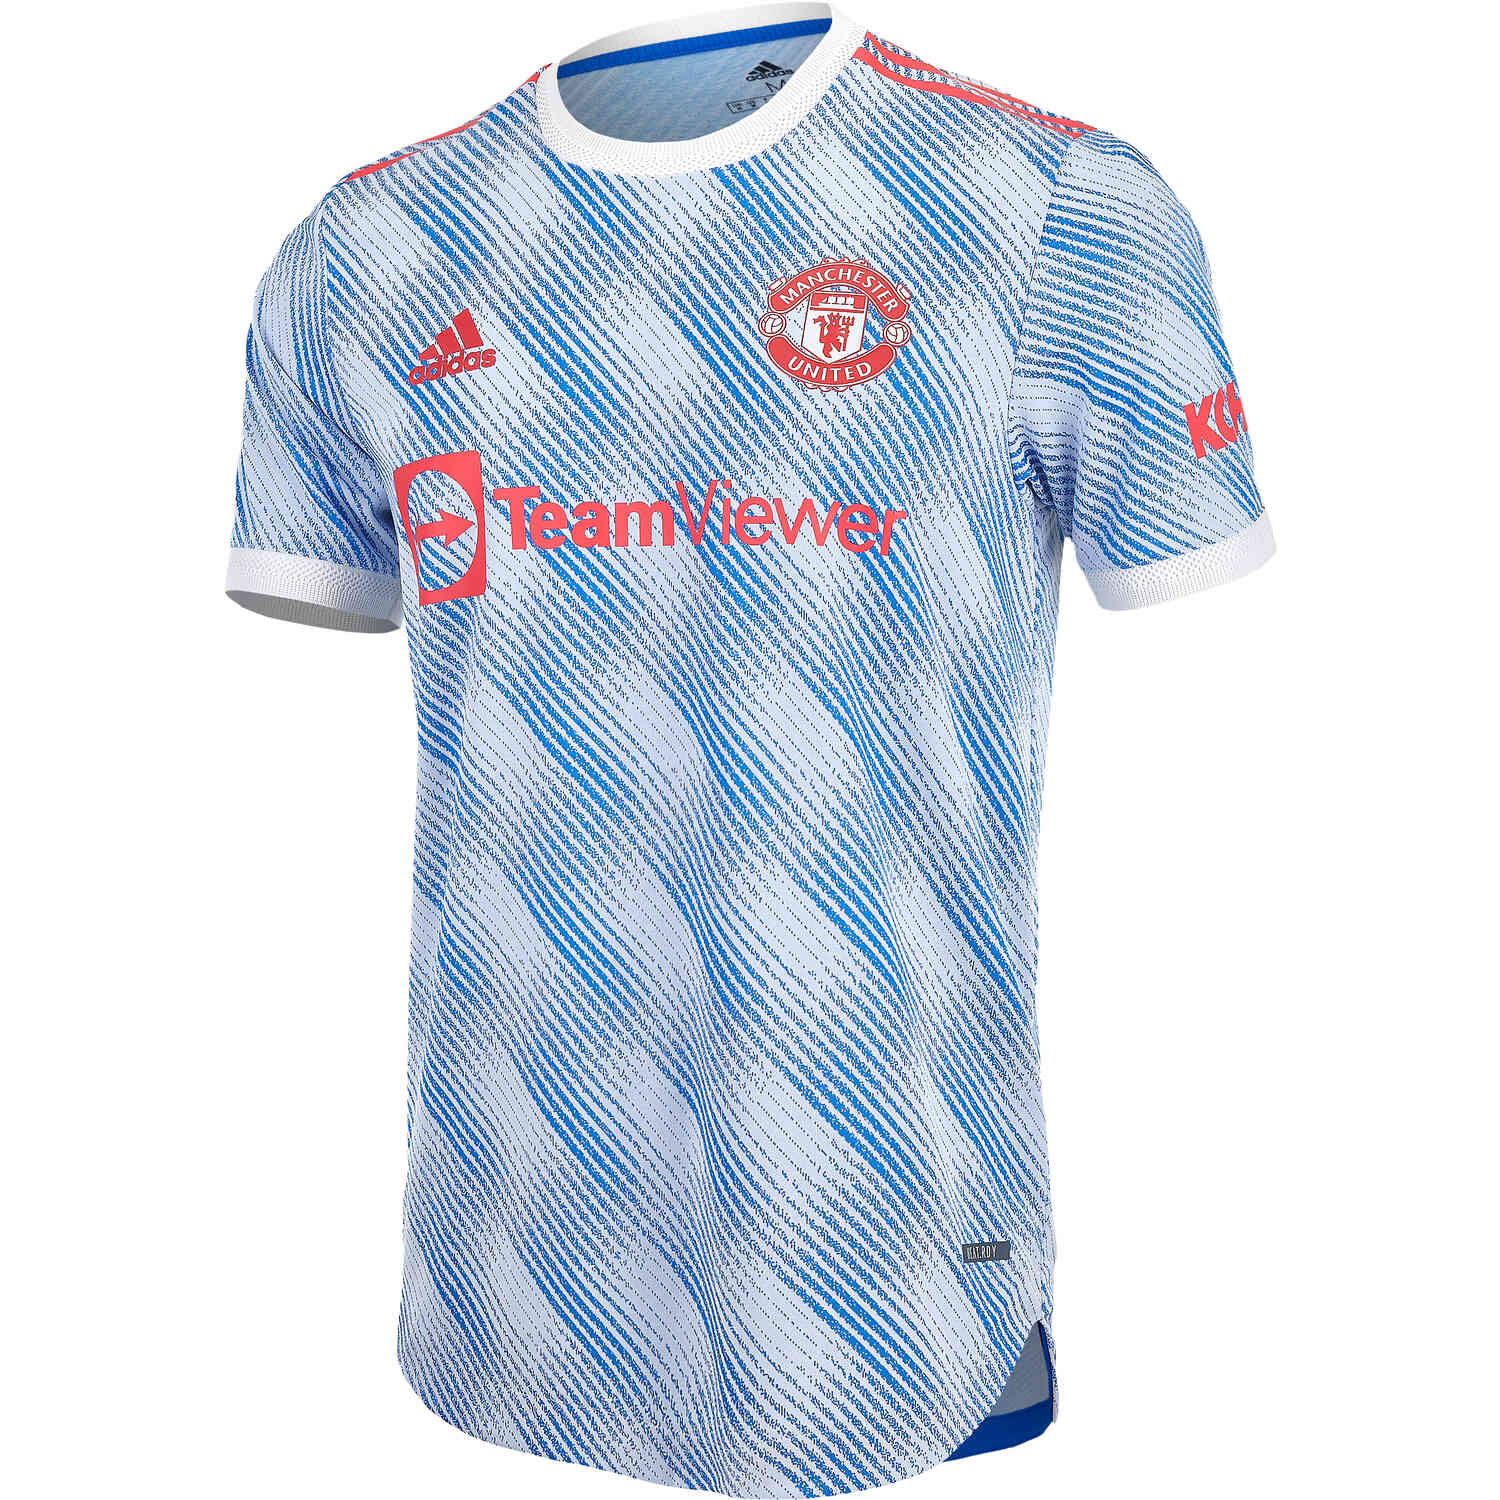 2021/22 adidas Manchester United Away Authentic Jersey - SoccerPro